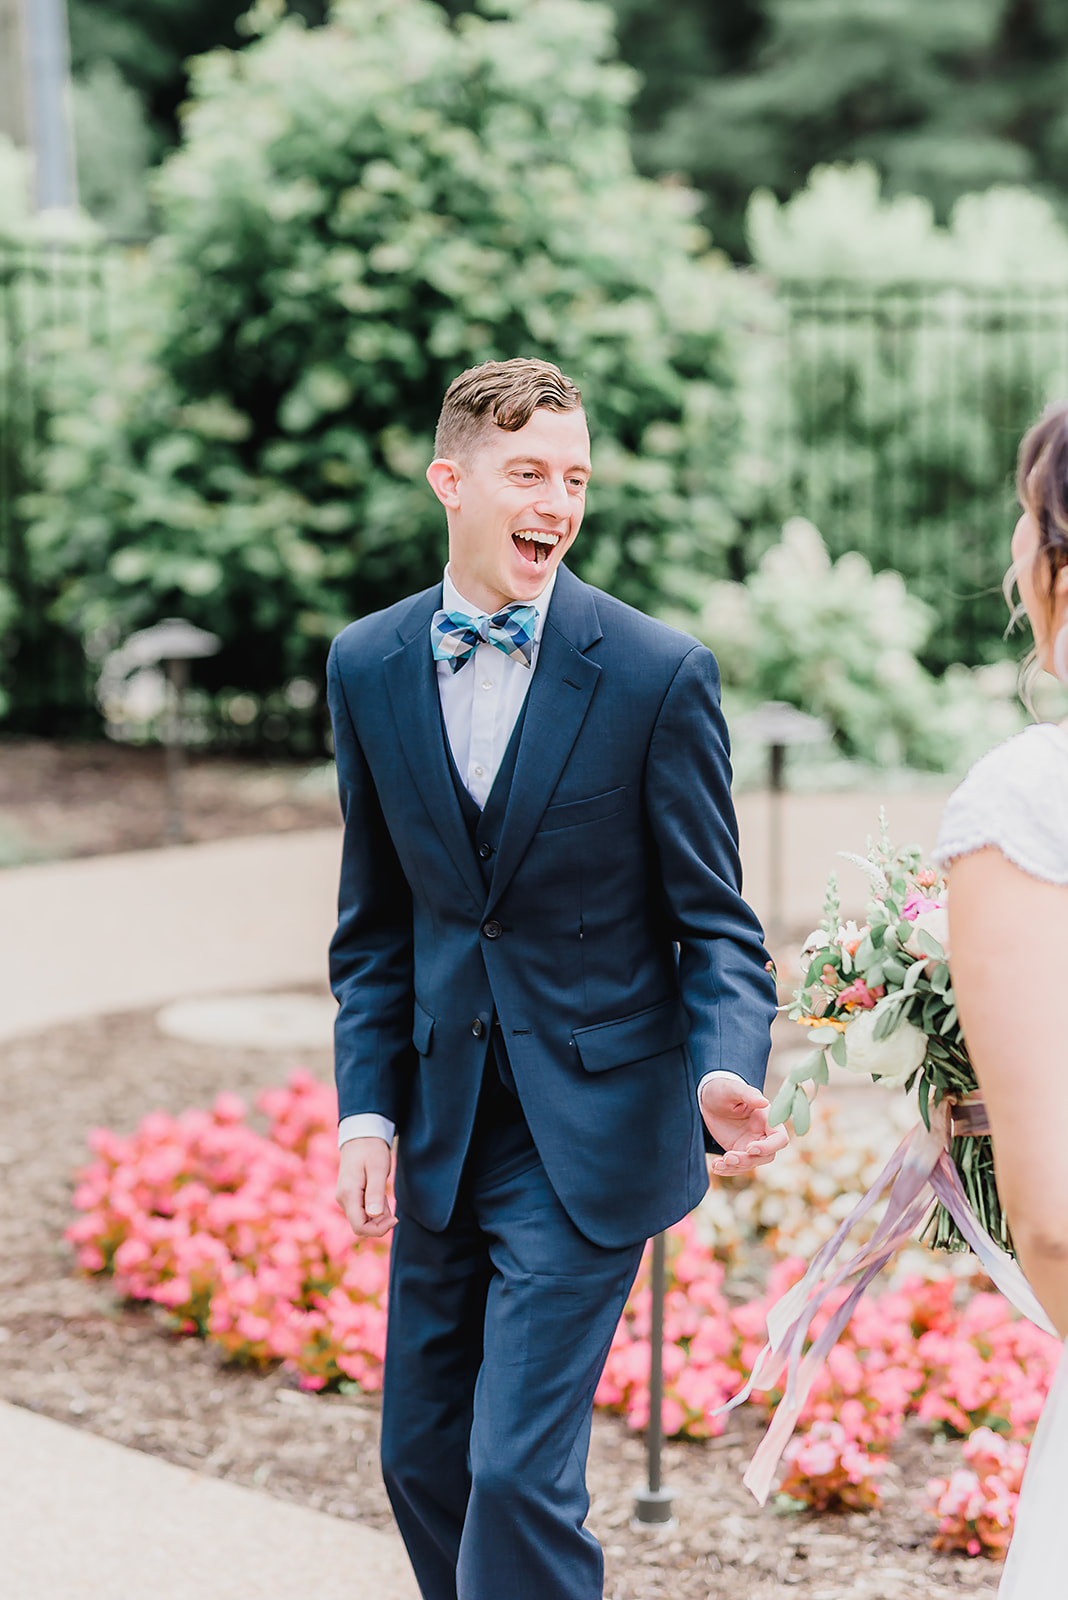 pittsburgh_botanic_gardens_summer_colors_wedding_first_look_grooms_reaction_bespoke_and_beloved_events